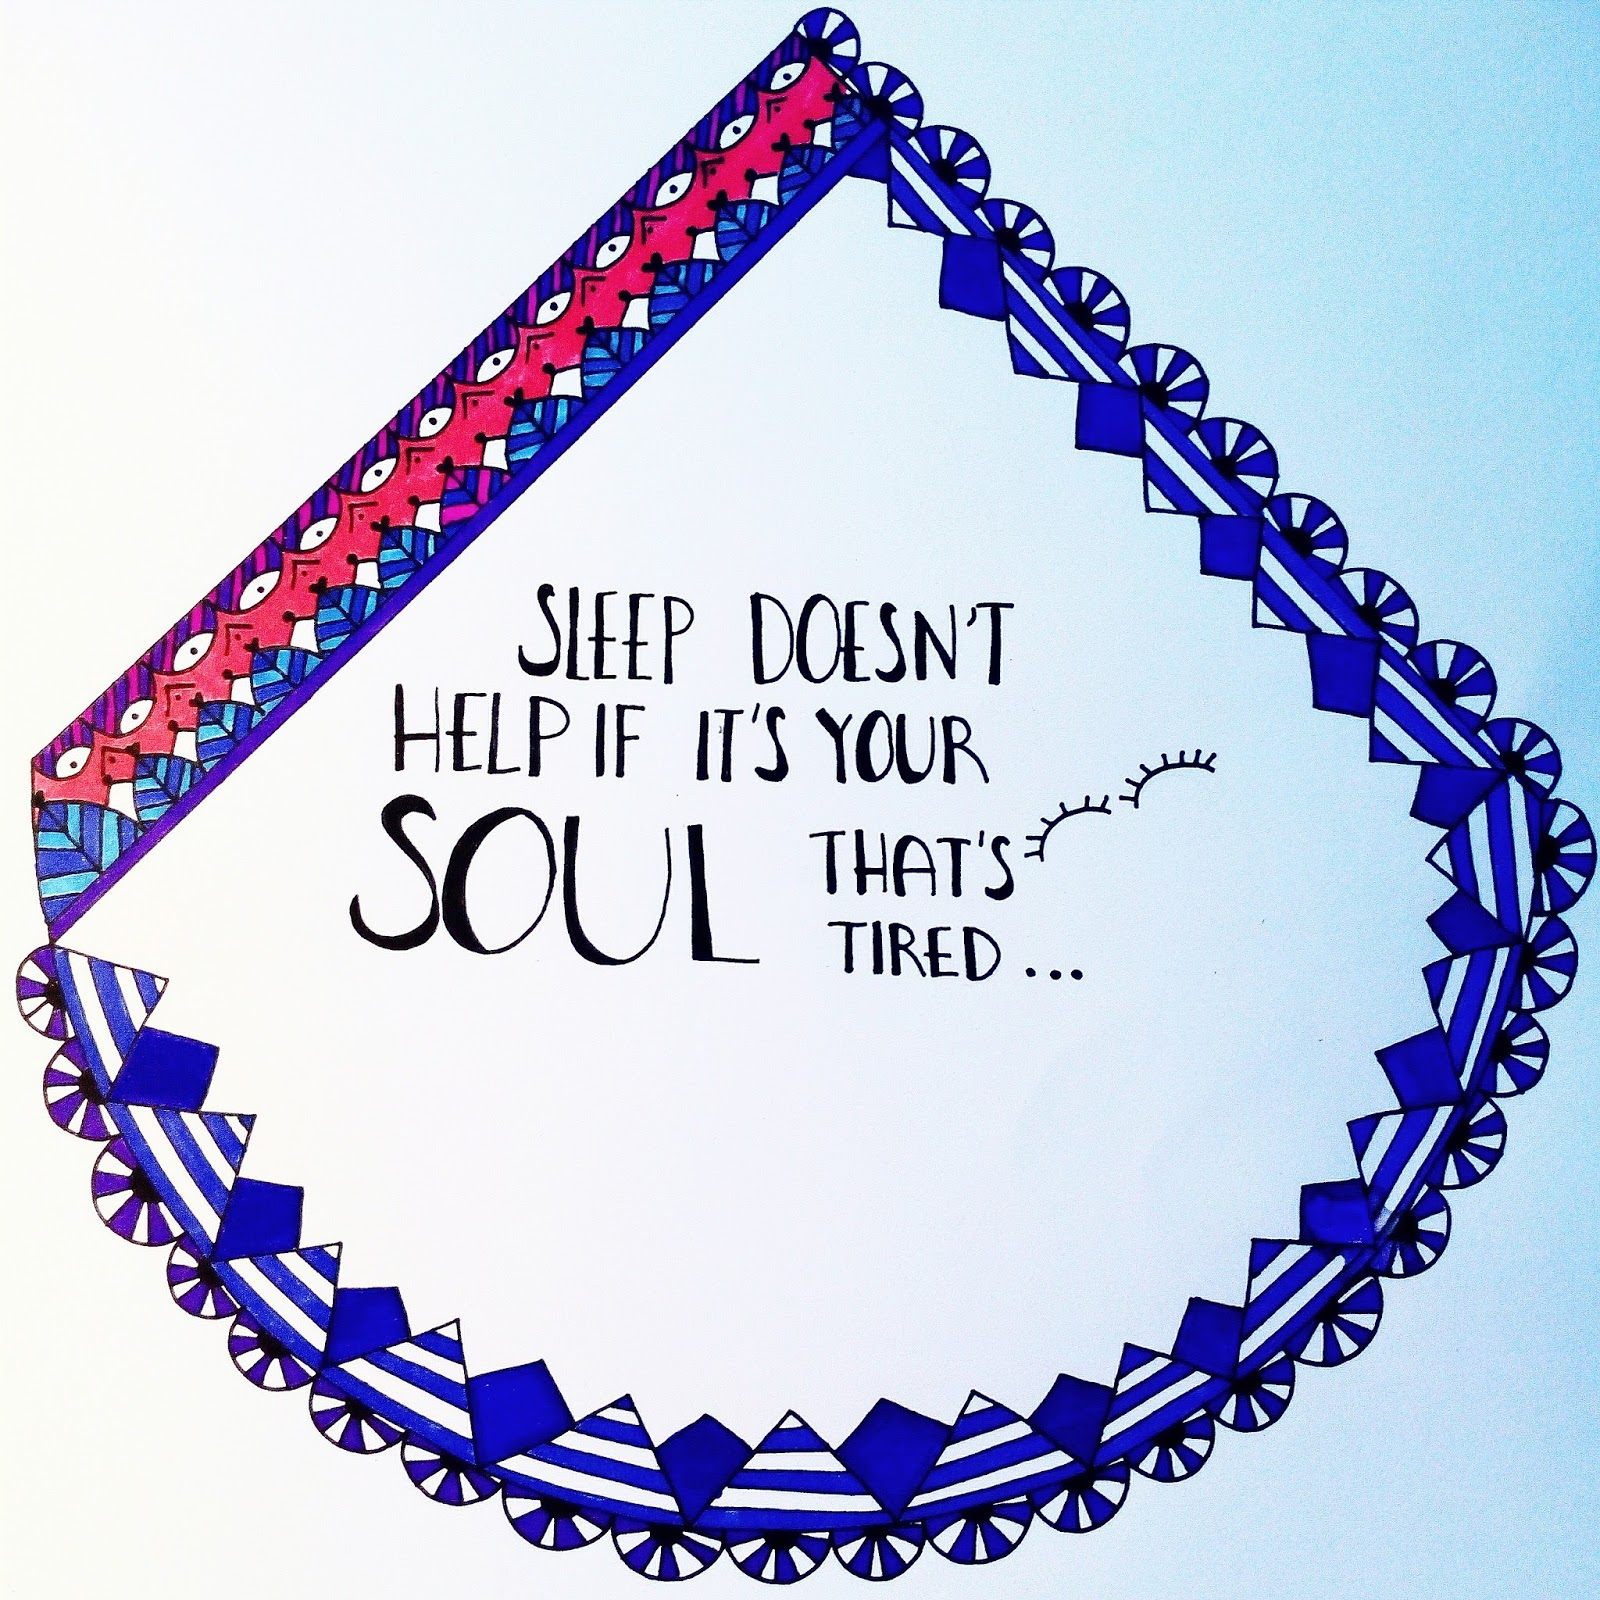 Sleep doesn't help it it's your sould that's tired